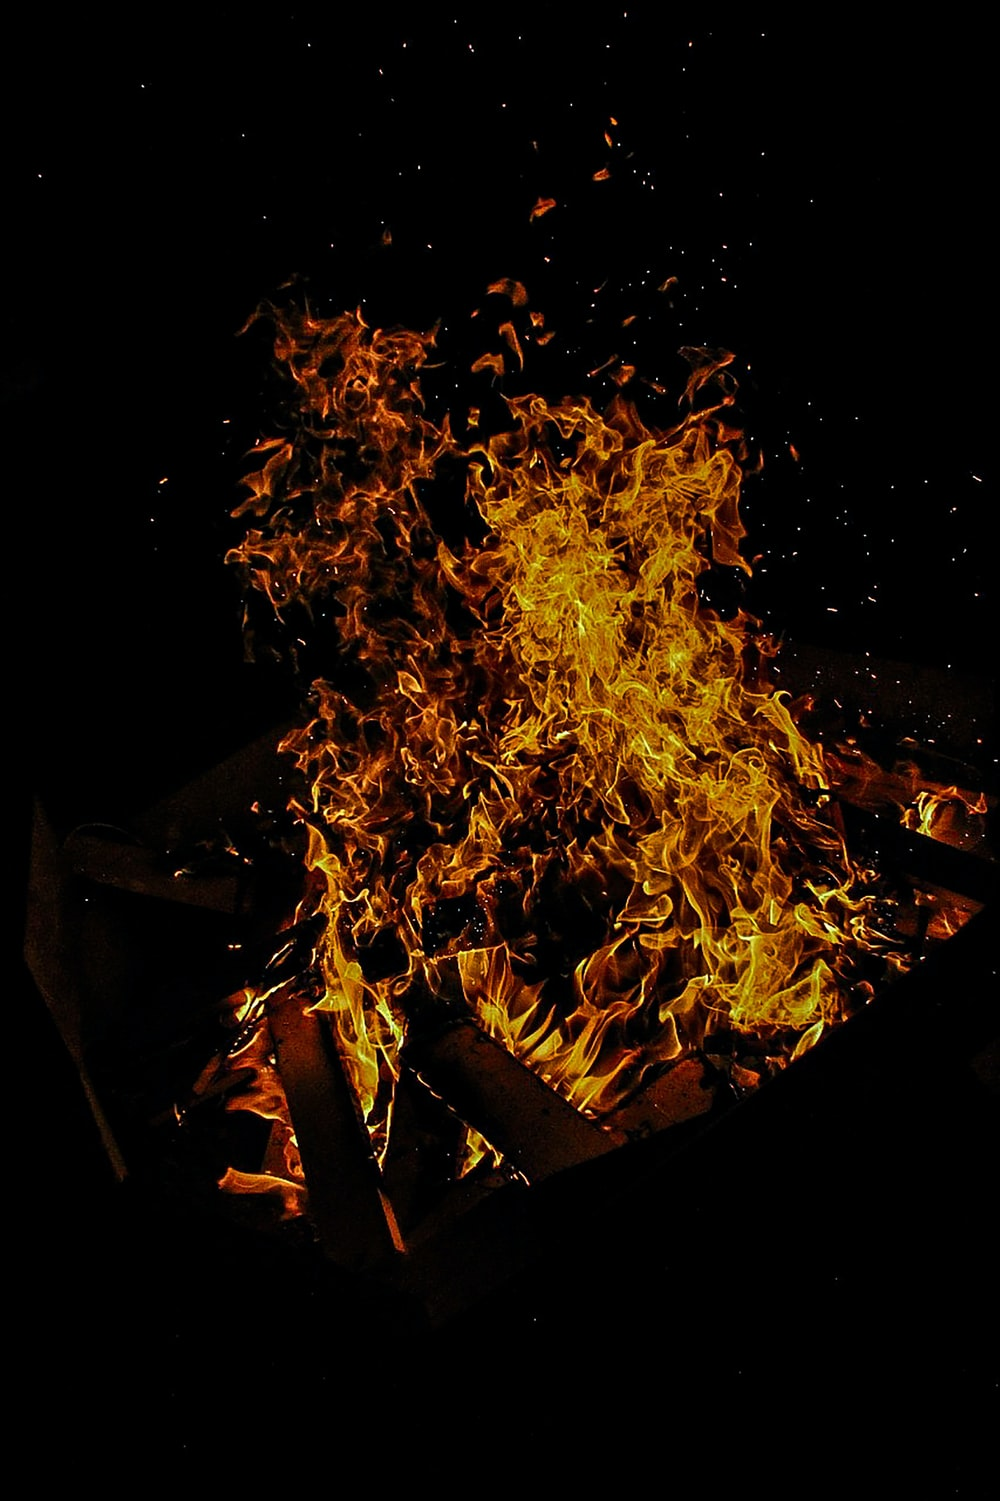 fire on fire during night time